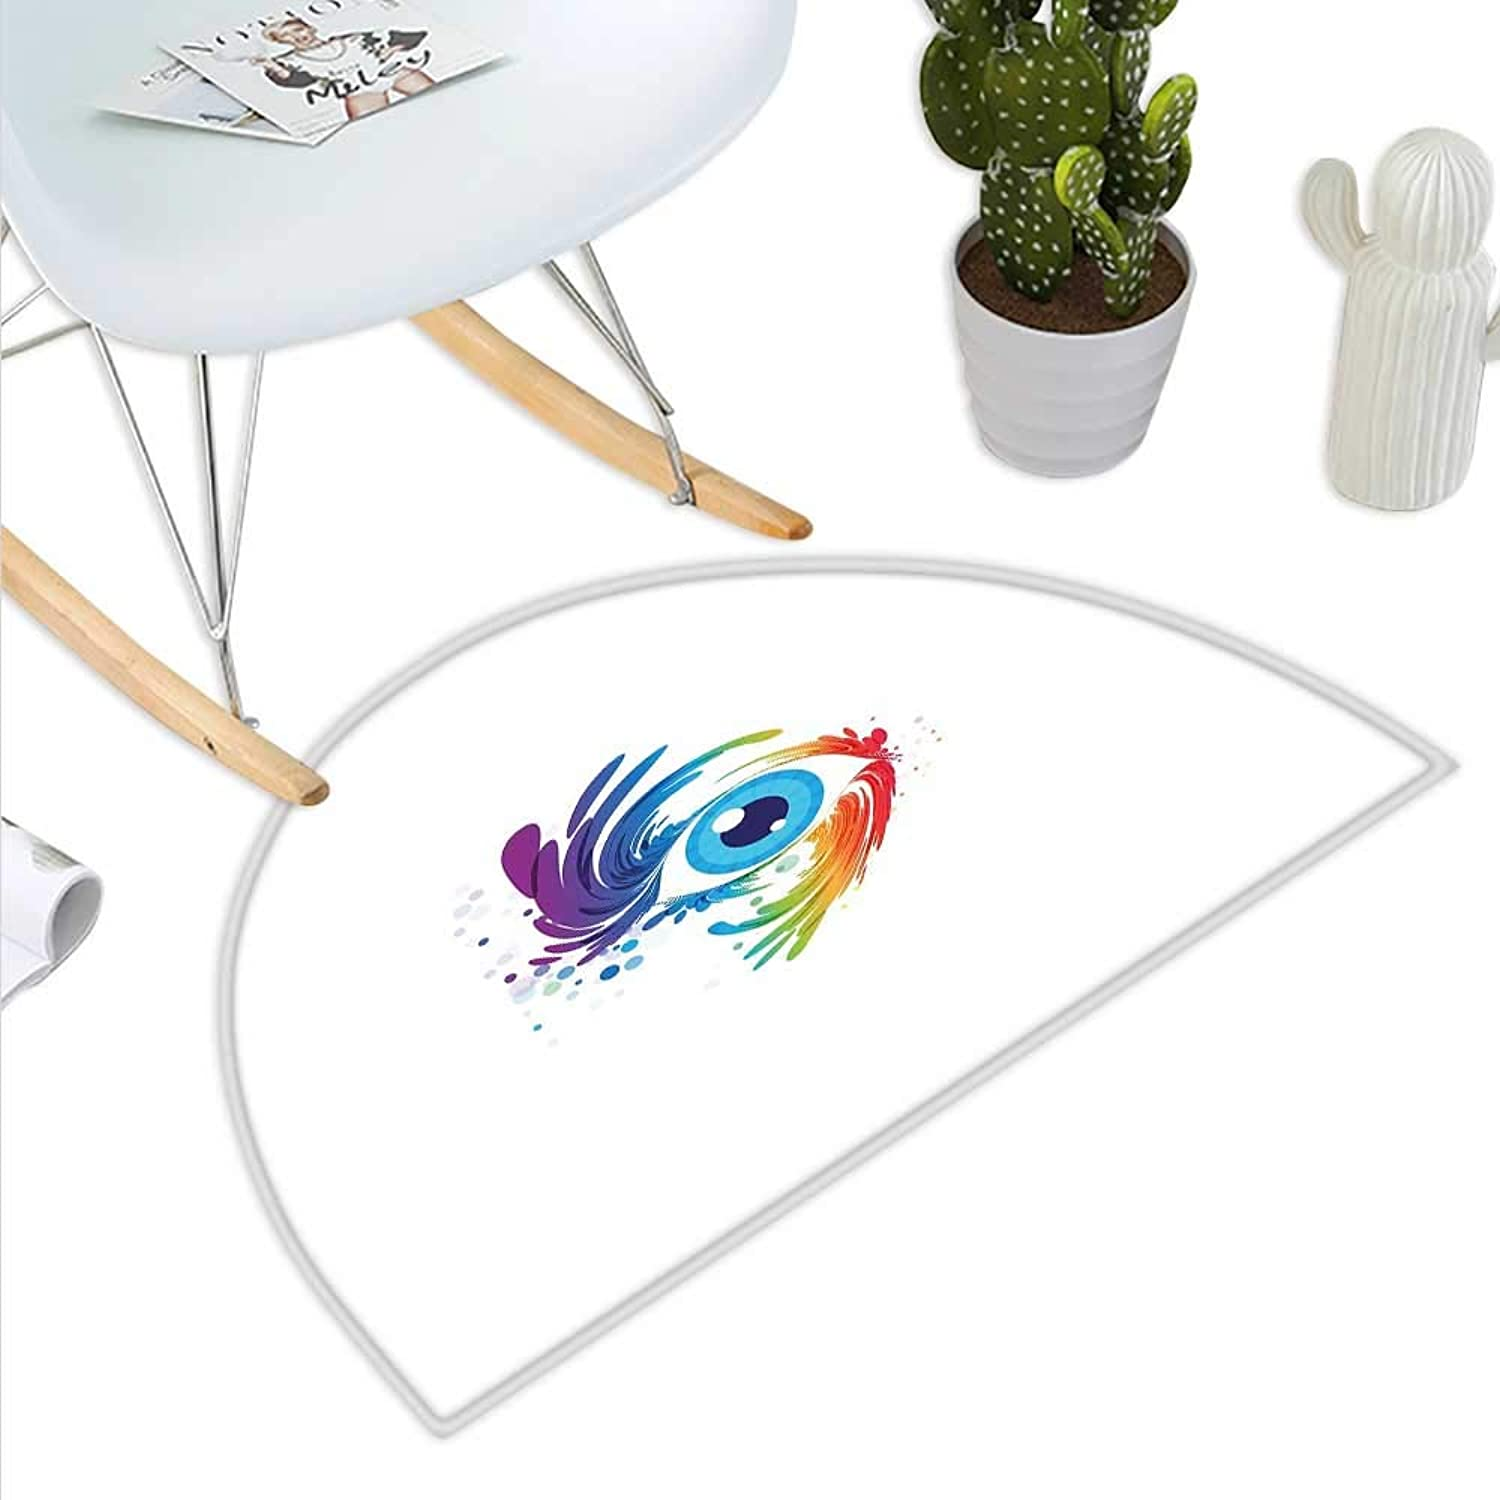 Eyelash Semicircle Doormat Abstract colorful Eye with Artistic Lively color Splashes Swirls Fantasy Creativity Halfmoon doormats H 43.3  xD 64.9  Multicolor